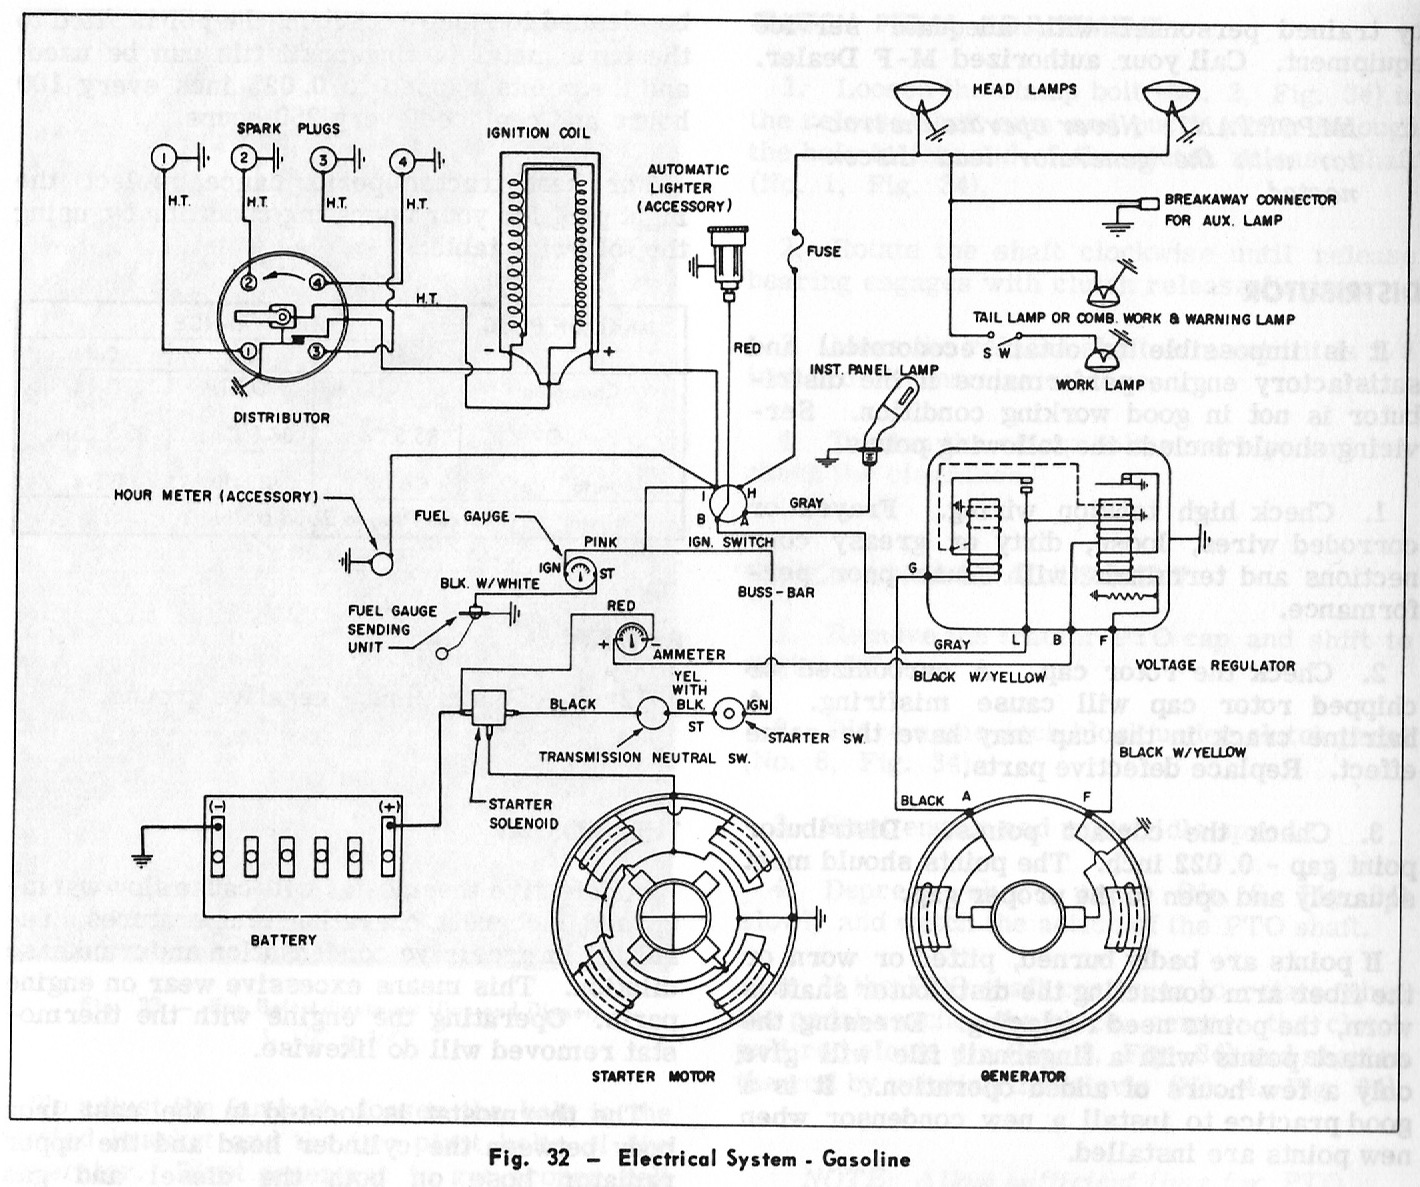 1967 ford fairlane wiring diagram furthermore alternator